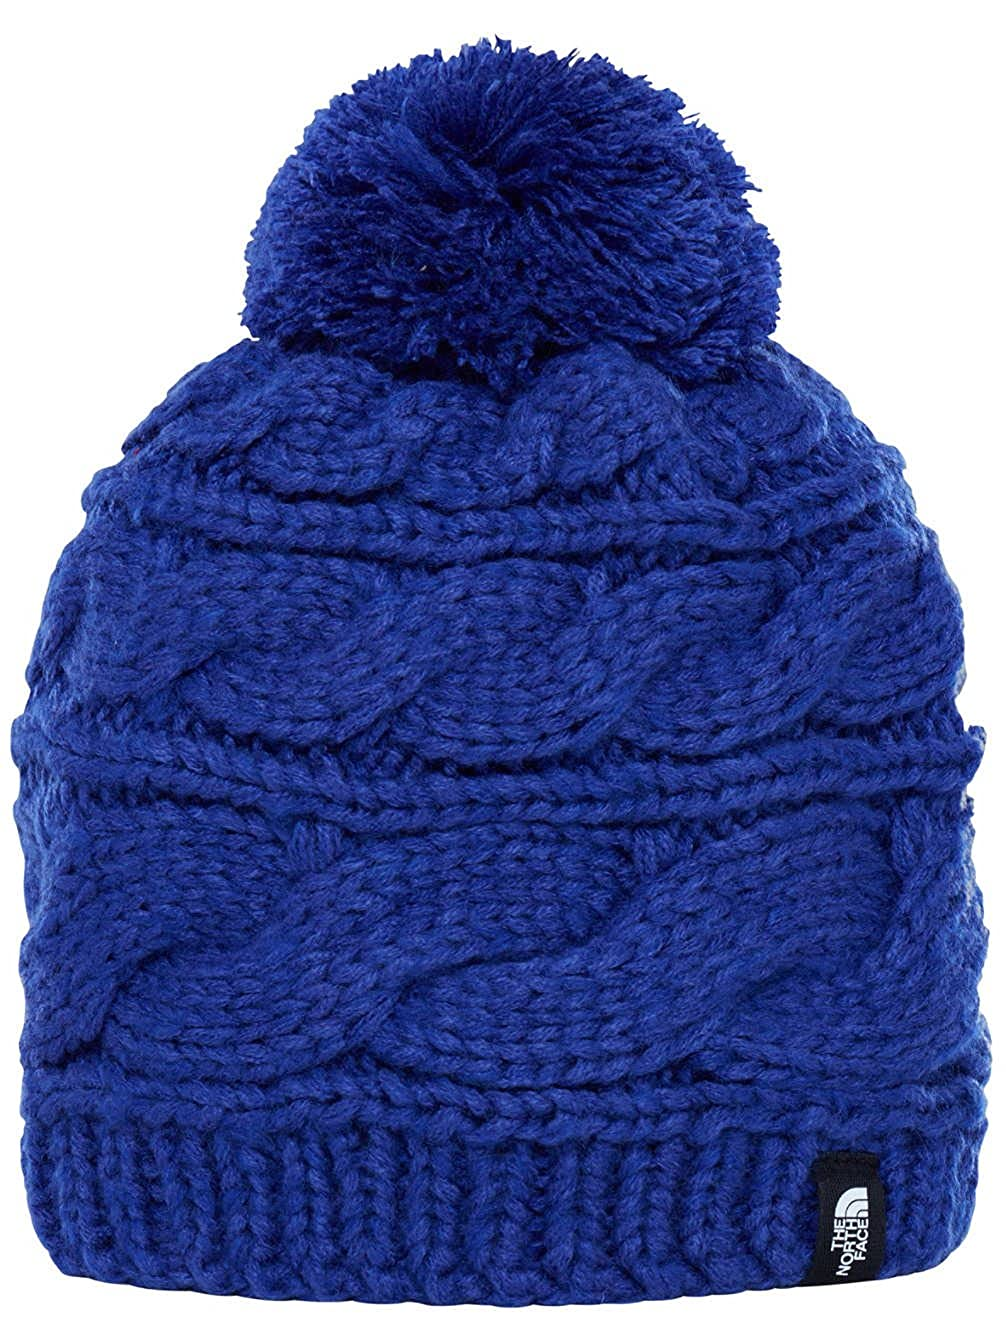 sale retailer eb624 2cf6e The North Face Women s Triple Cable Beanie - Fig - OS at Amazon Women s  Clothing store